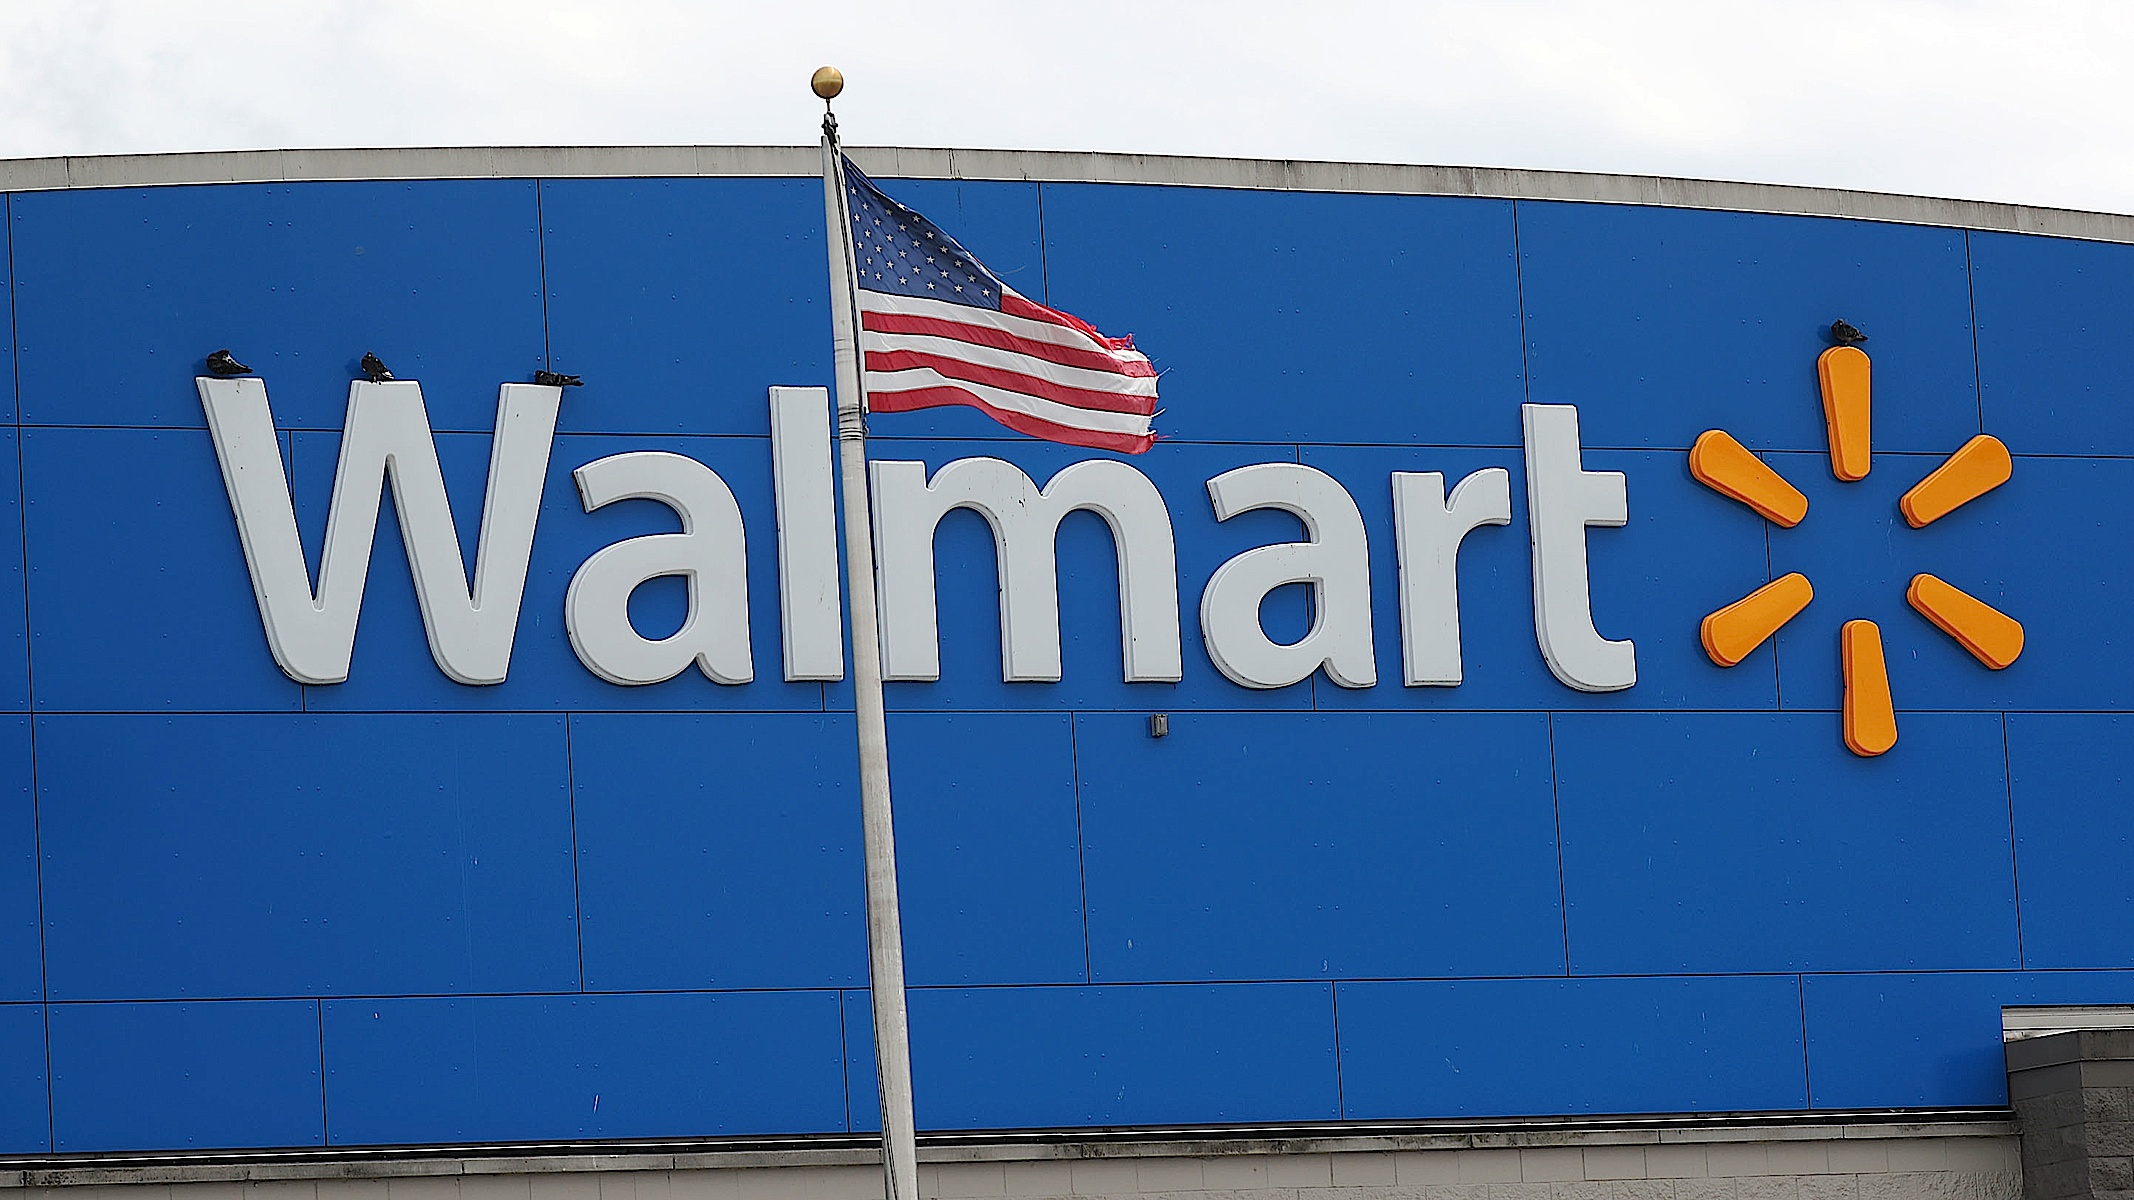 Walmart tells staff to remove signs showing violence, including video game ads